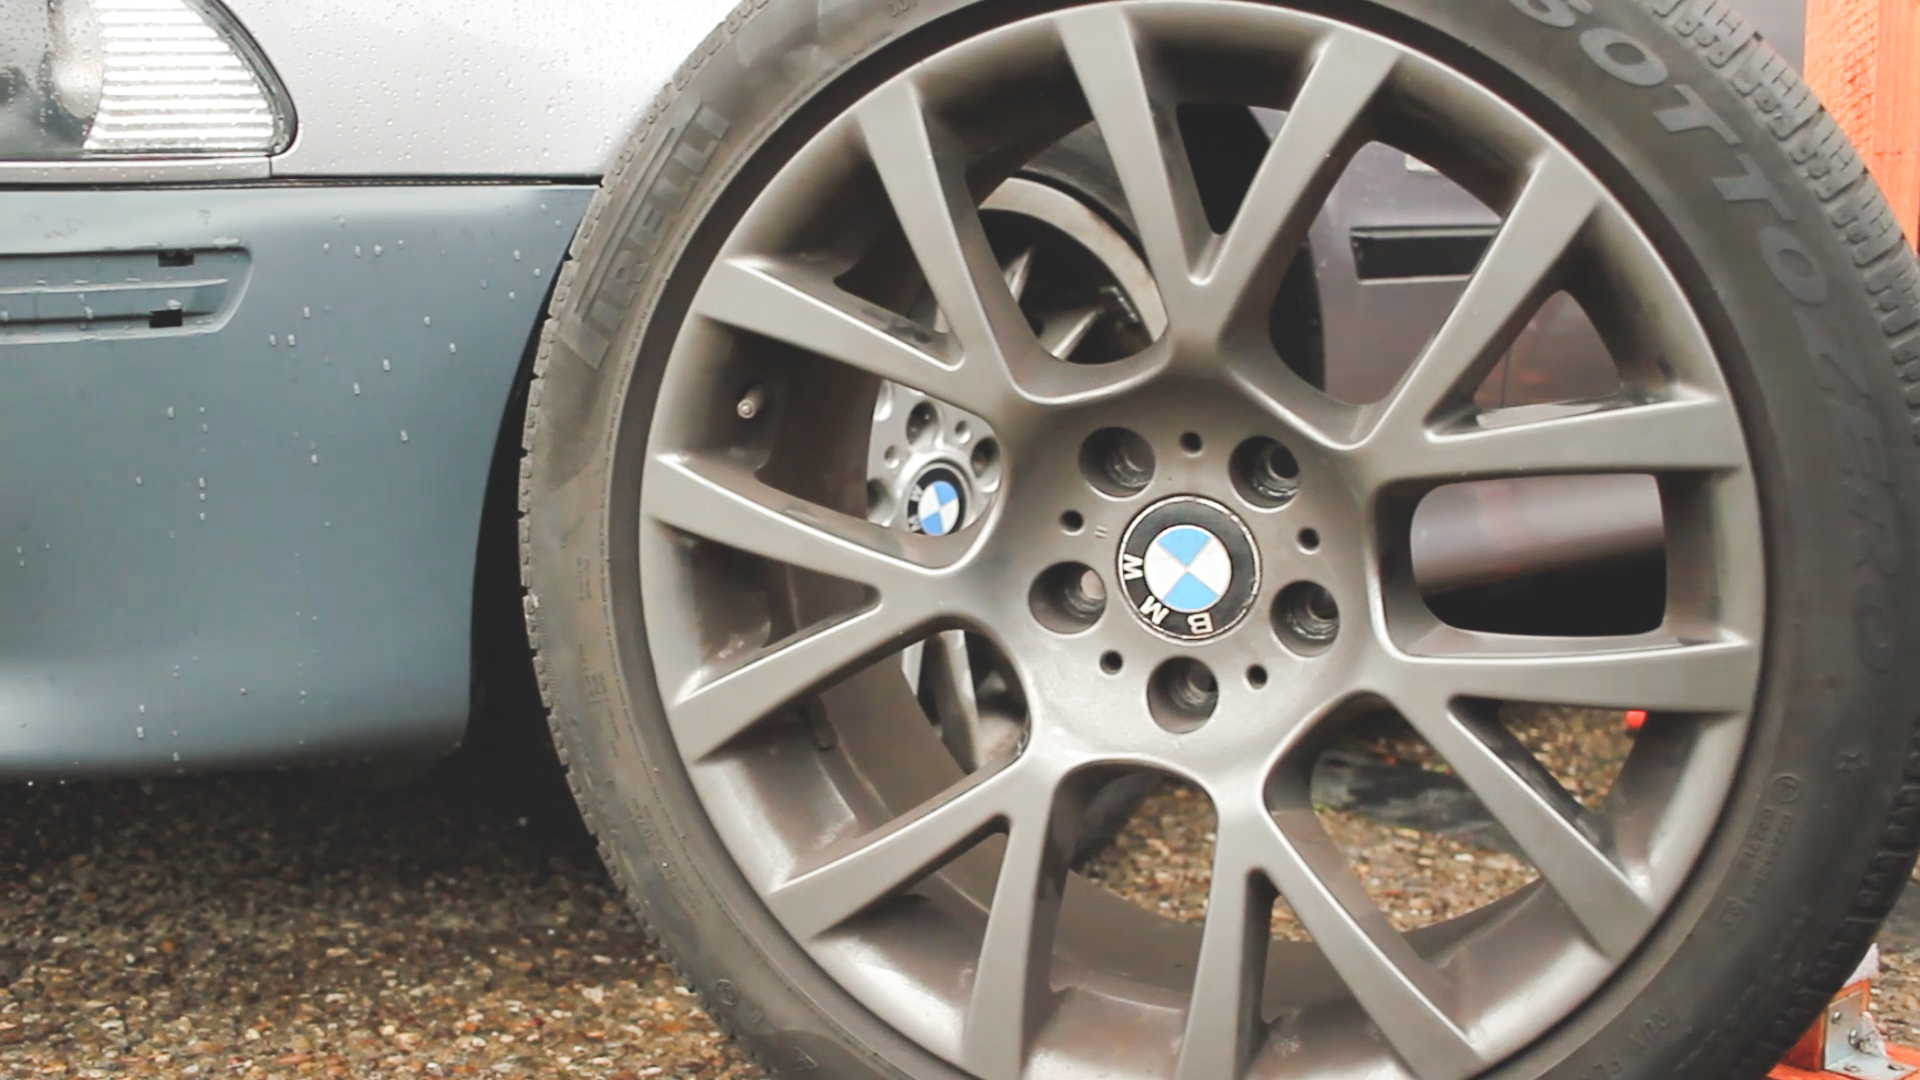 Mömus BMW E39 wheels and springs lowering wheels style 238 styling 238